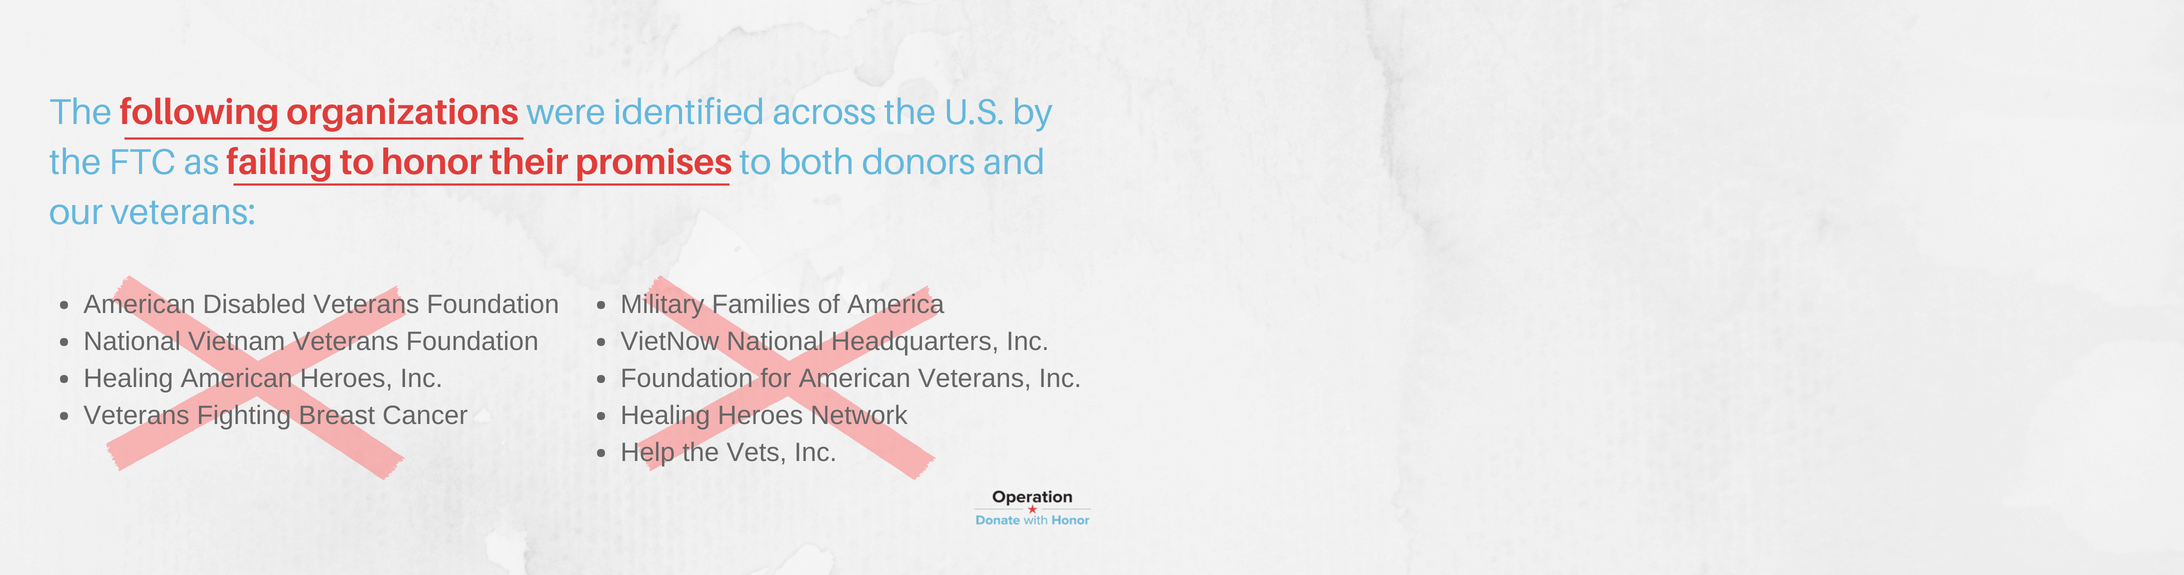 Image of list of charities from the FTC's Donate With Honor